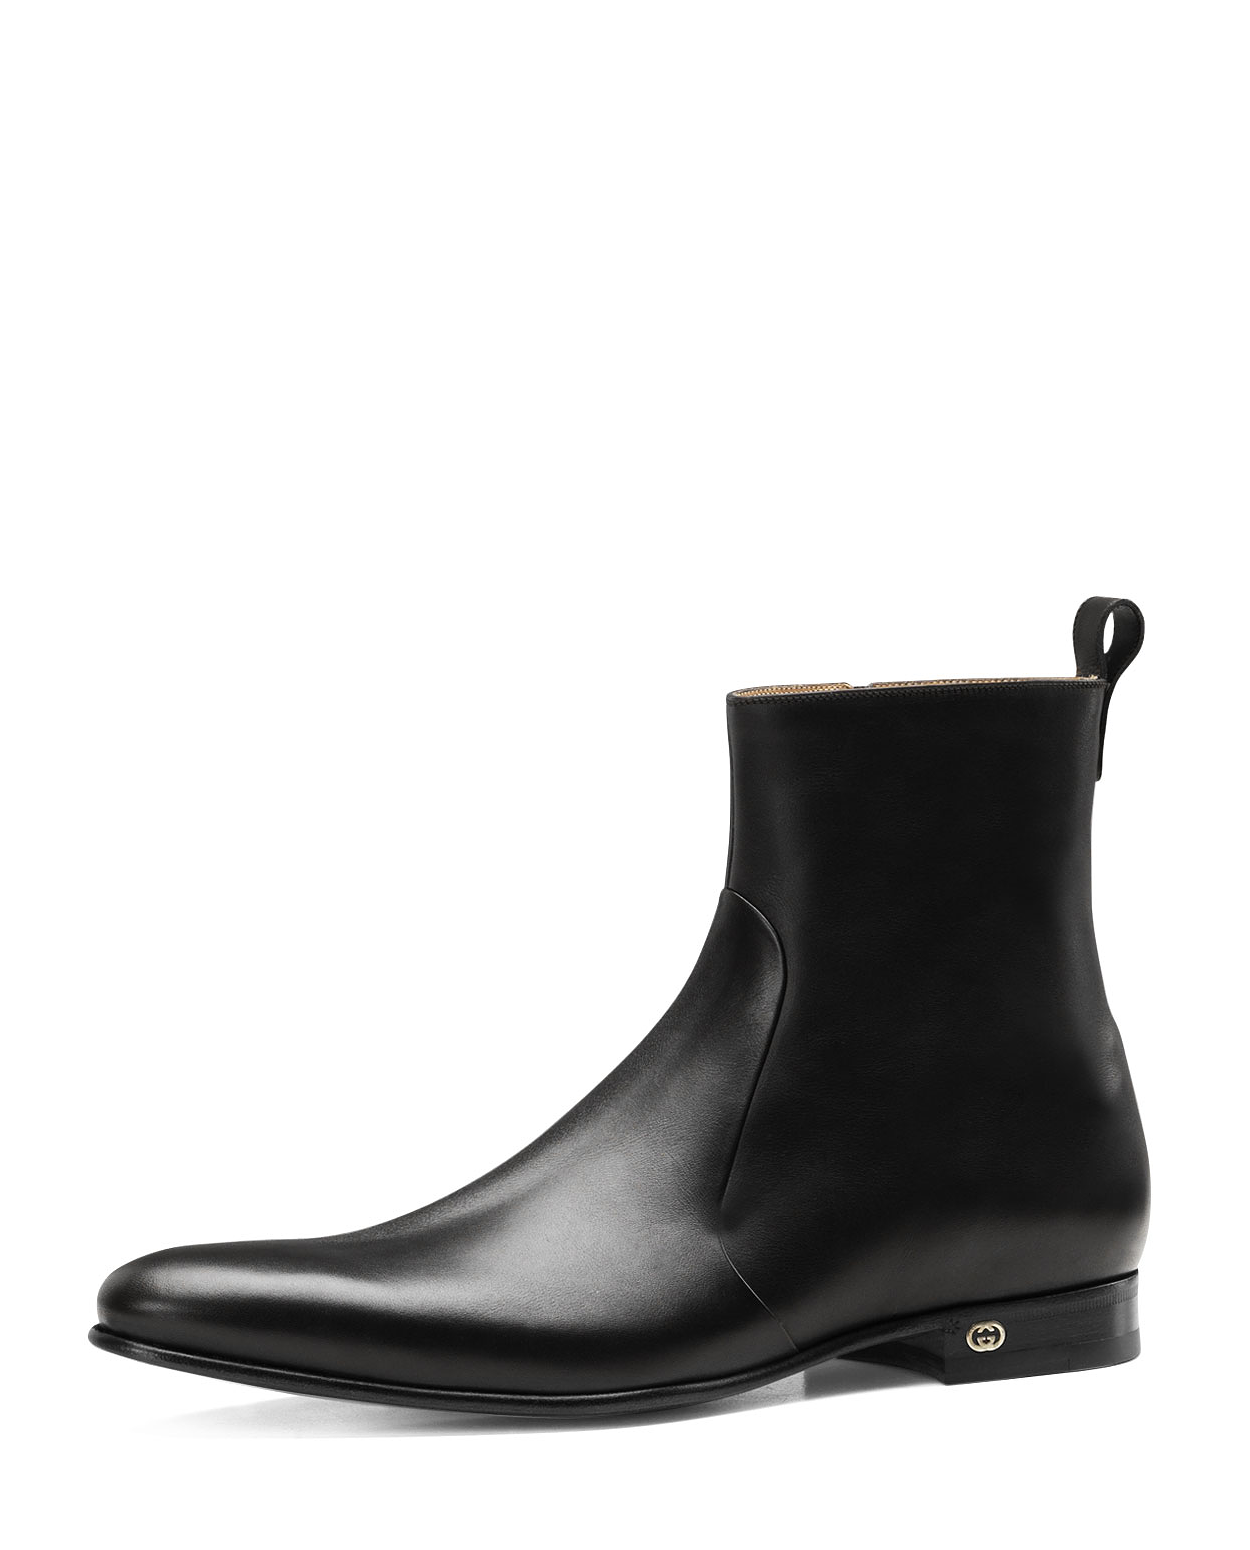 Boots, Mens dress boots, Leather boots